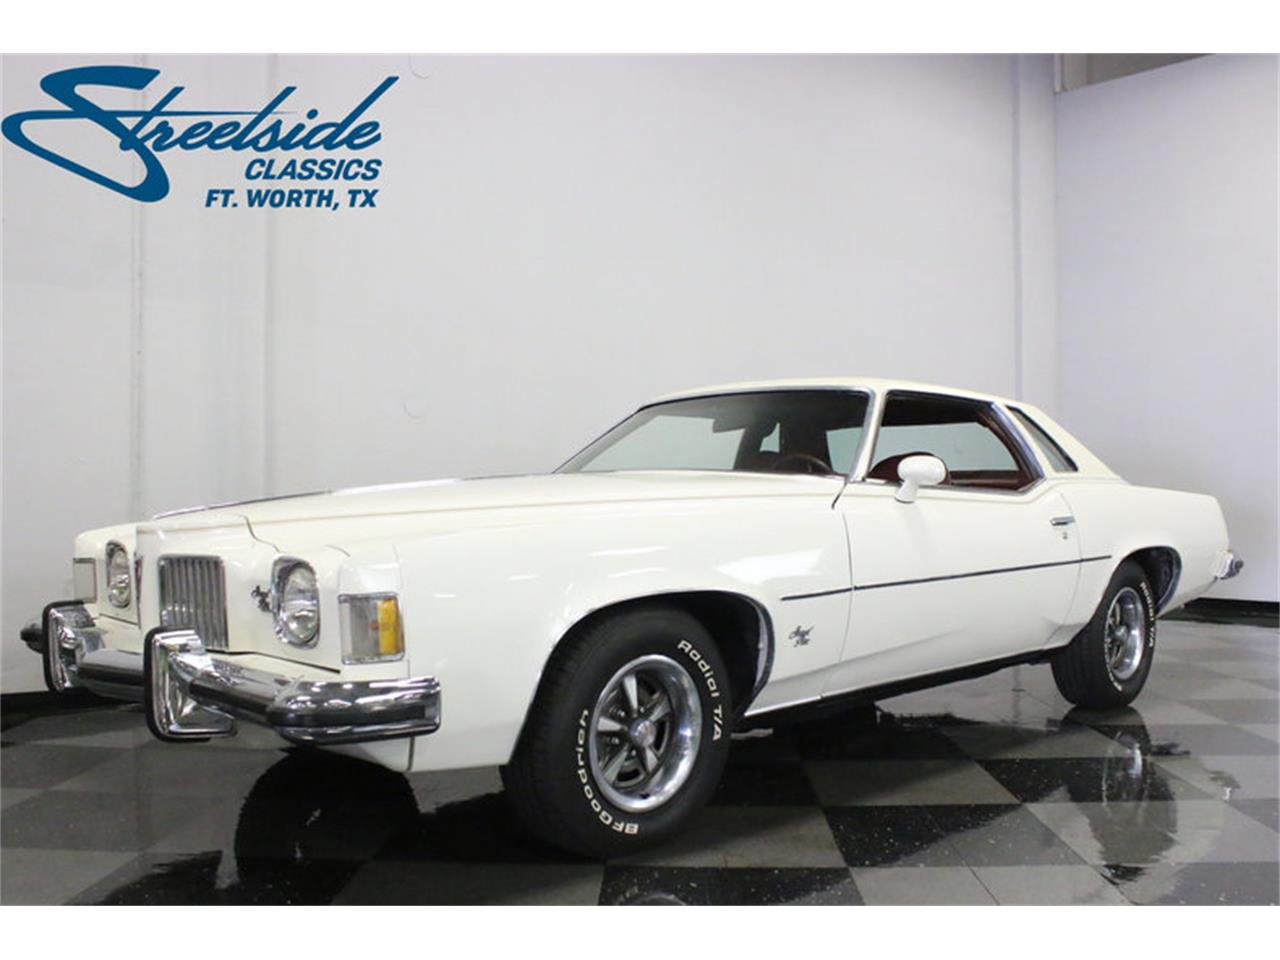 Large Picture of 1973 Pontiac Grand Prix Model J located in Ft Worth Texas - $13,995.00 Offered by Streetside Classics - Dallas / Fort Worth - L2N9